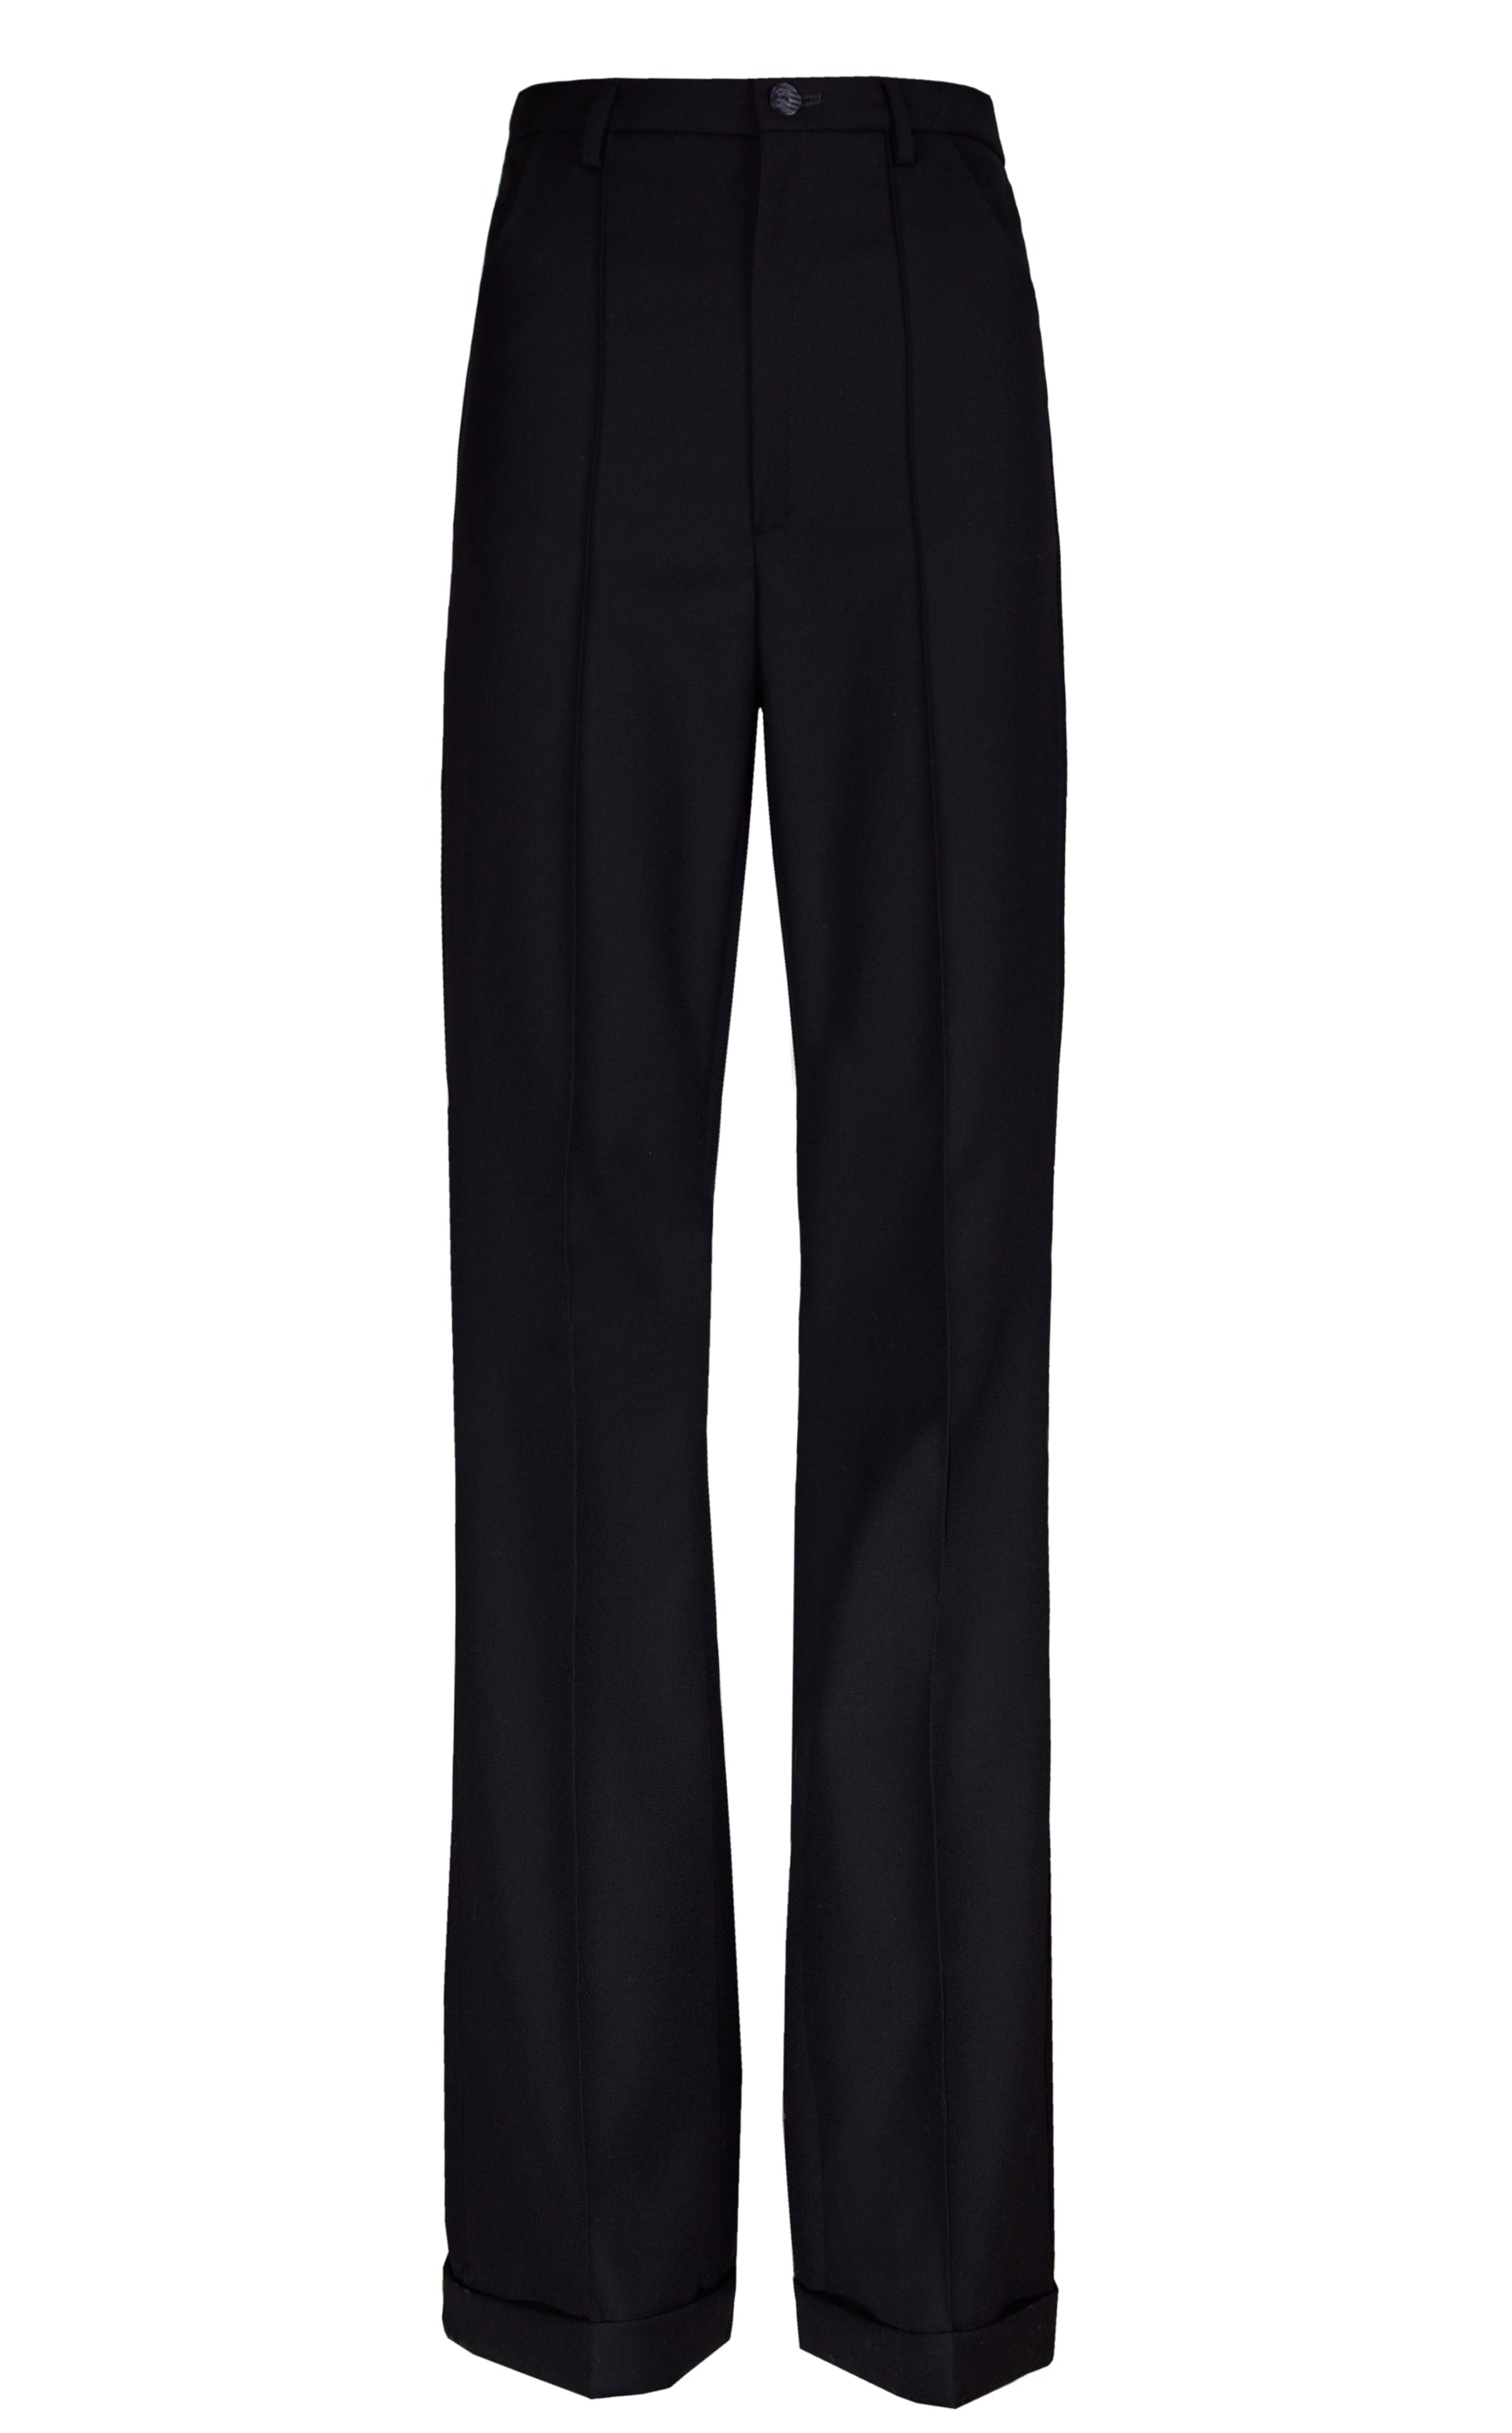 BLACK CREASED TROUSERS